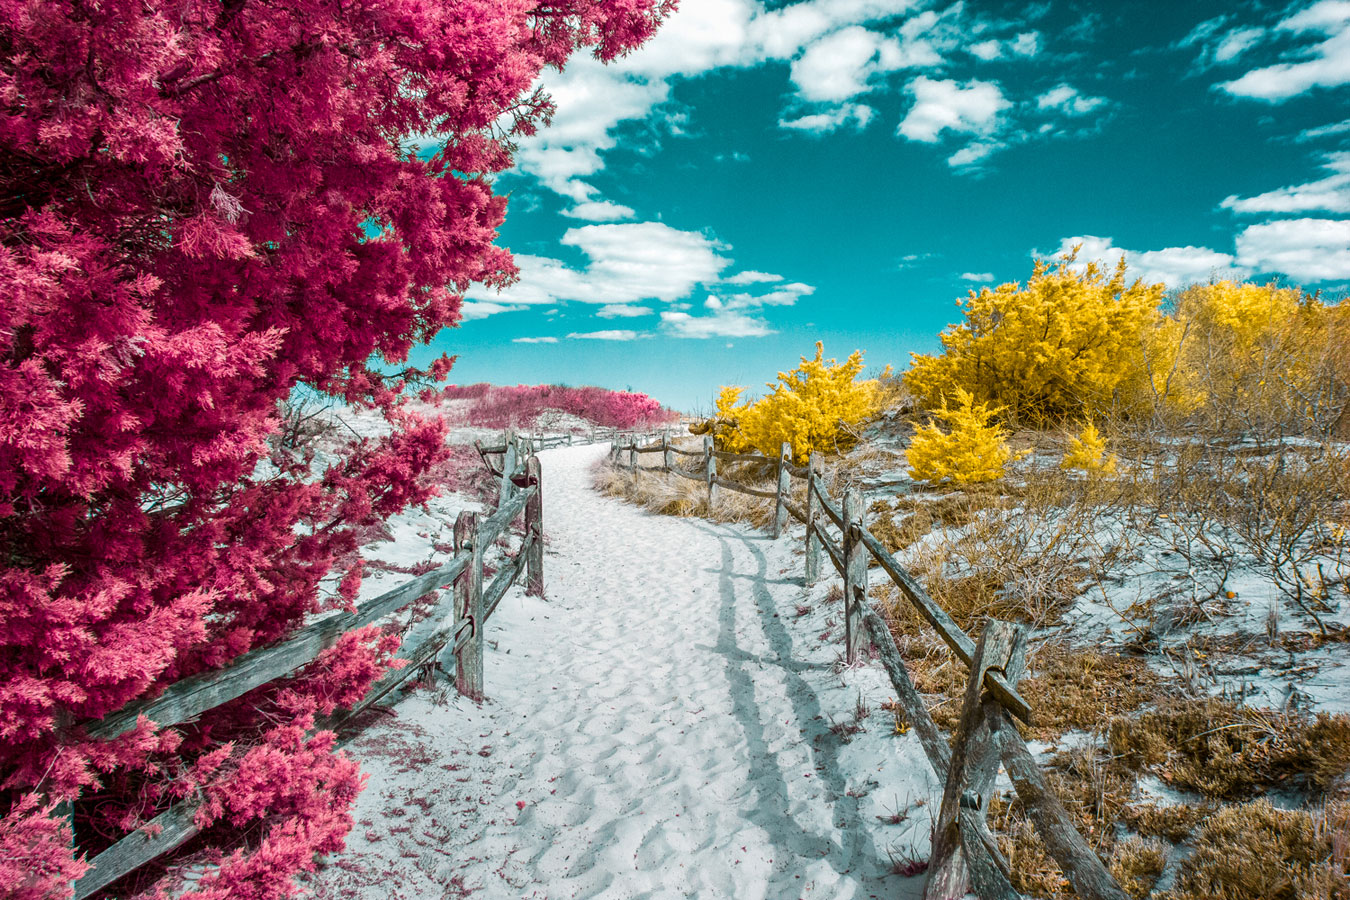 © David Nilsen, Life in Another Light Infrared Photography Contest